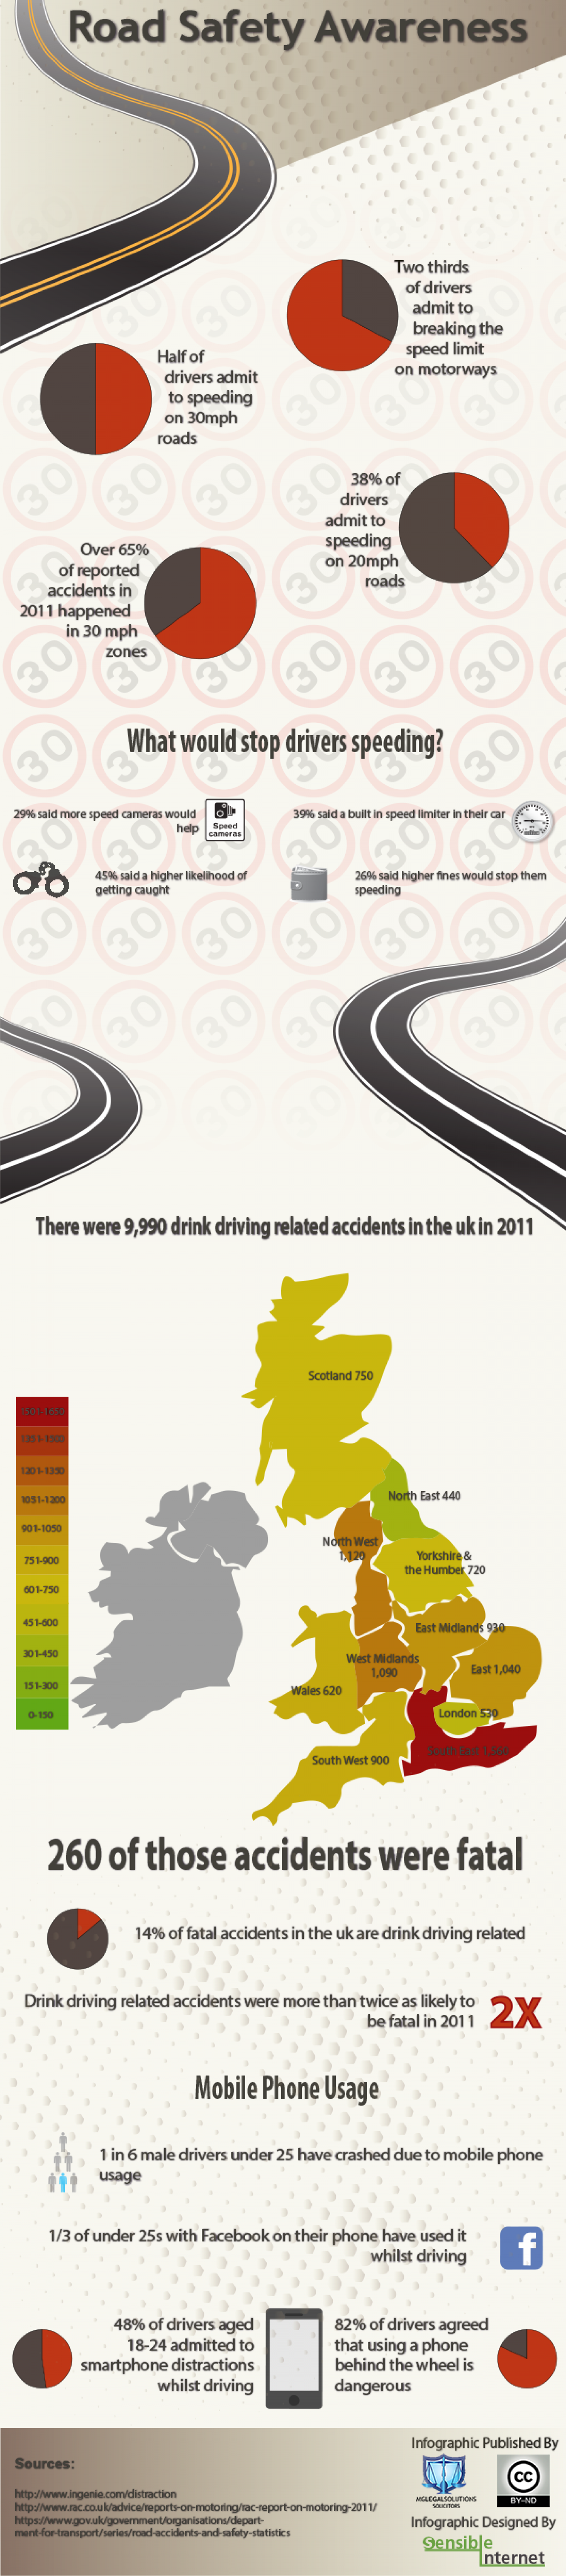 Road Safety Awareness Infographic